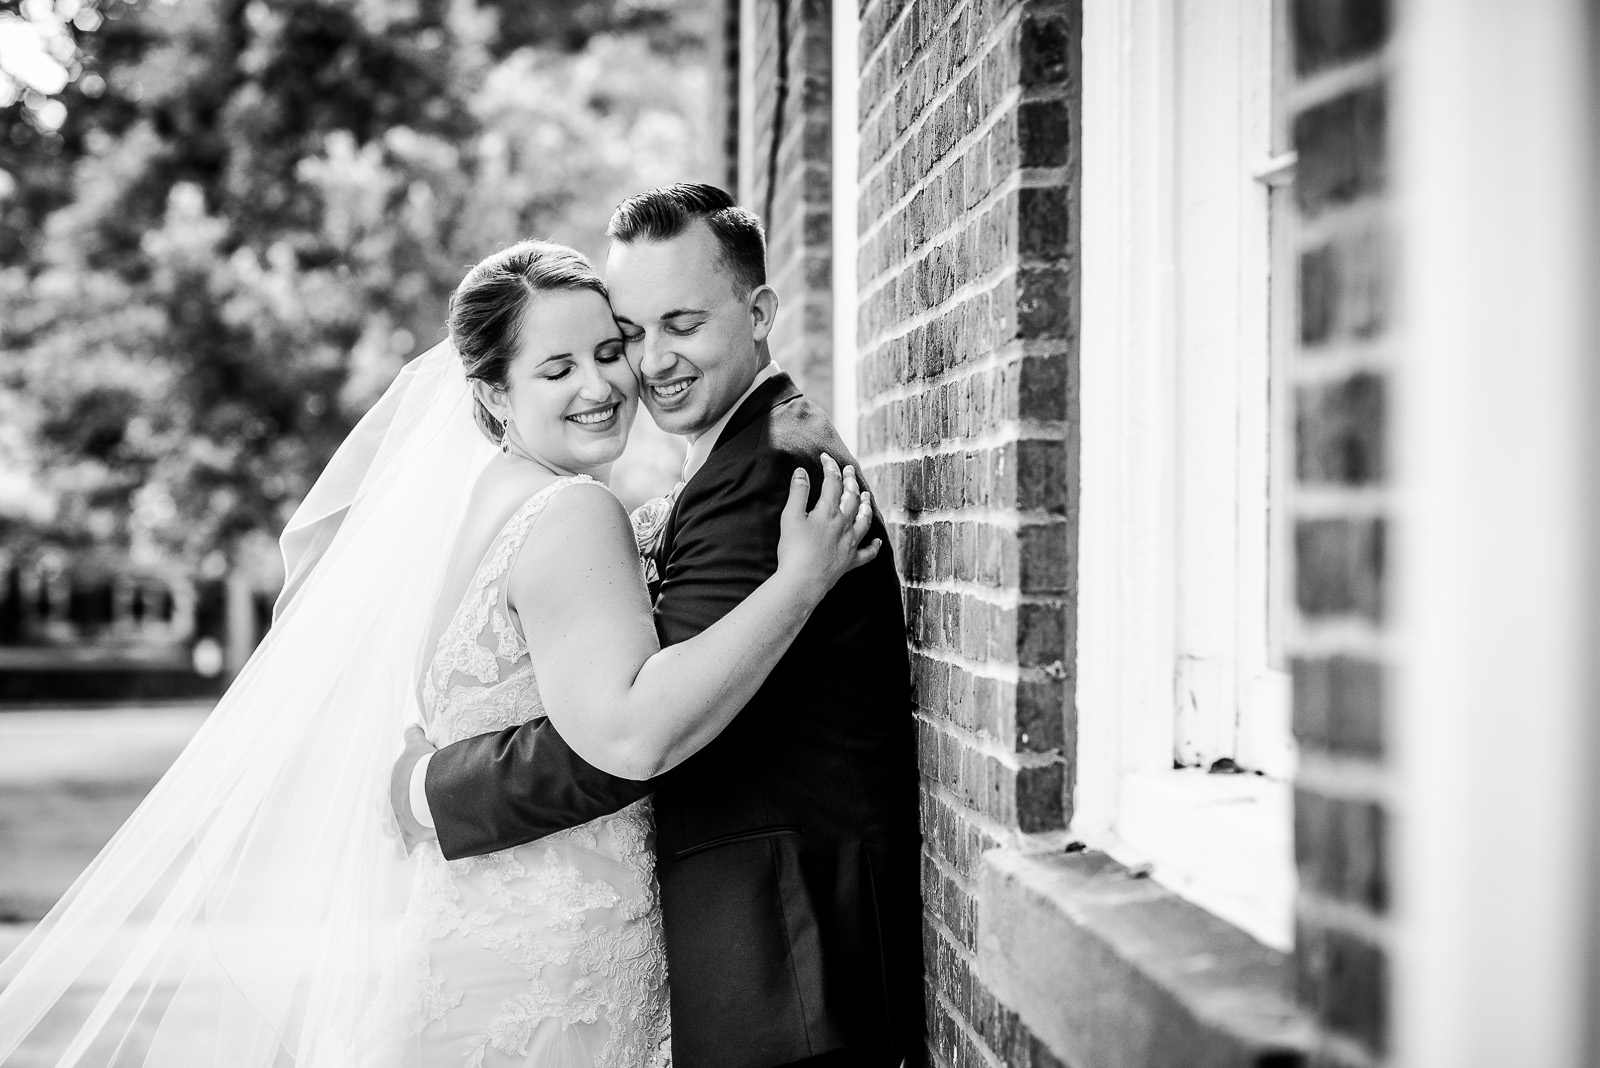 Eric_and_Christy_Photography_Blog_Wedding_Paige_Eric-34